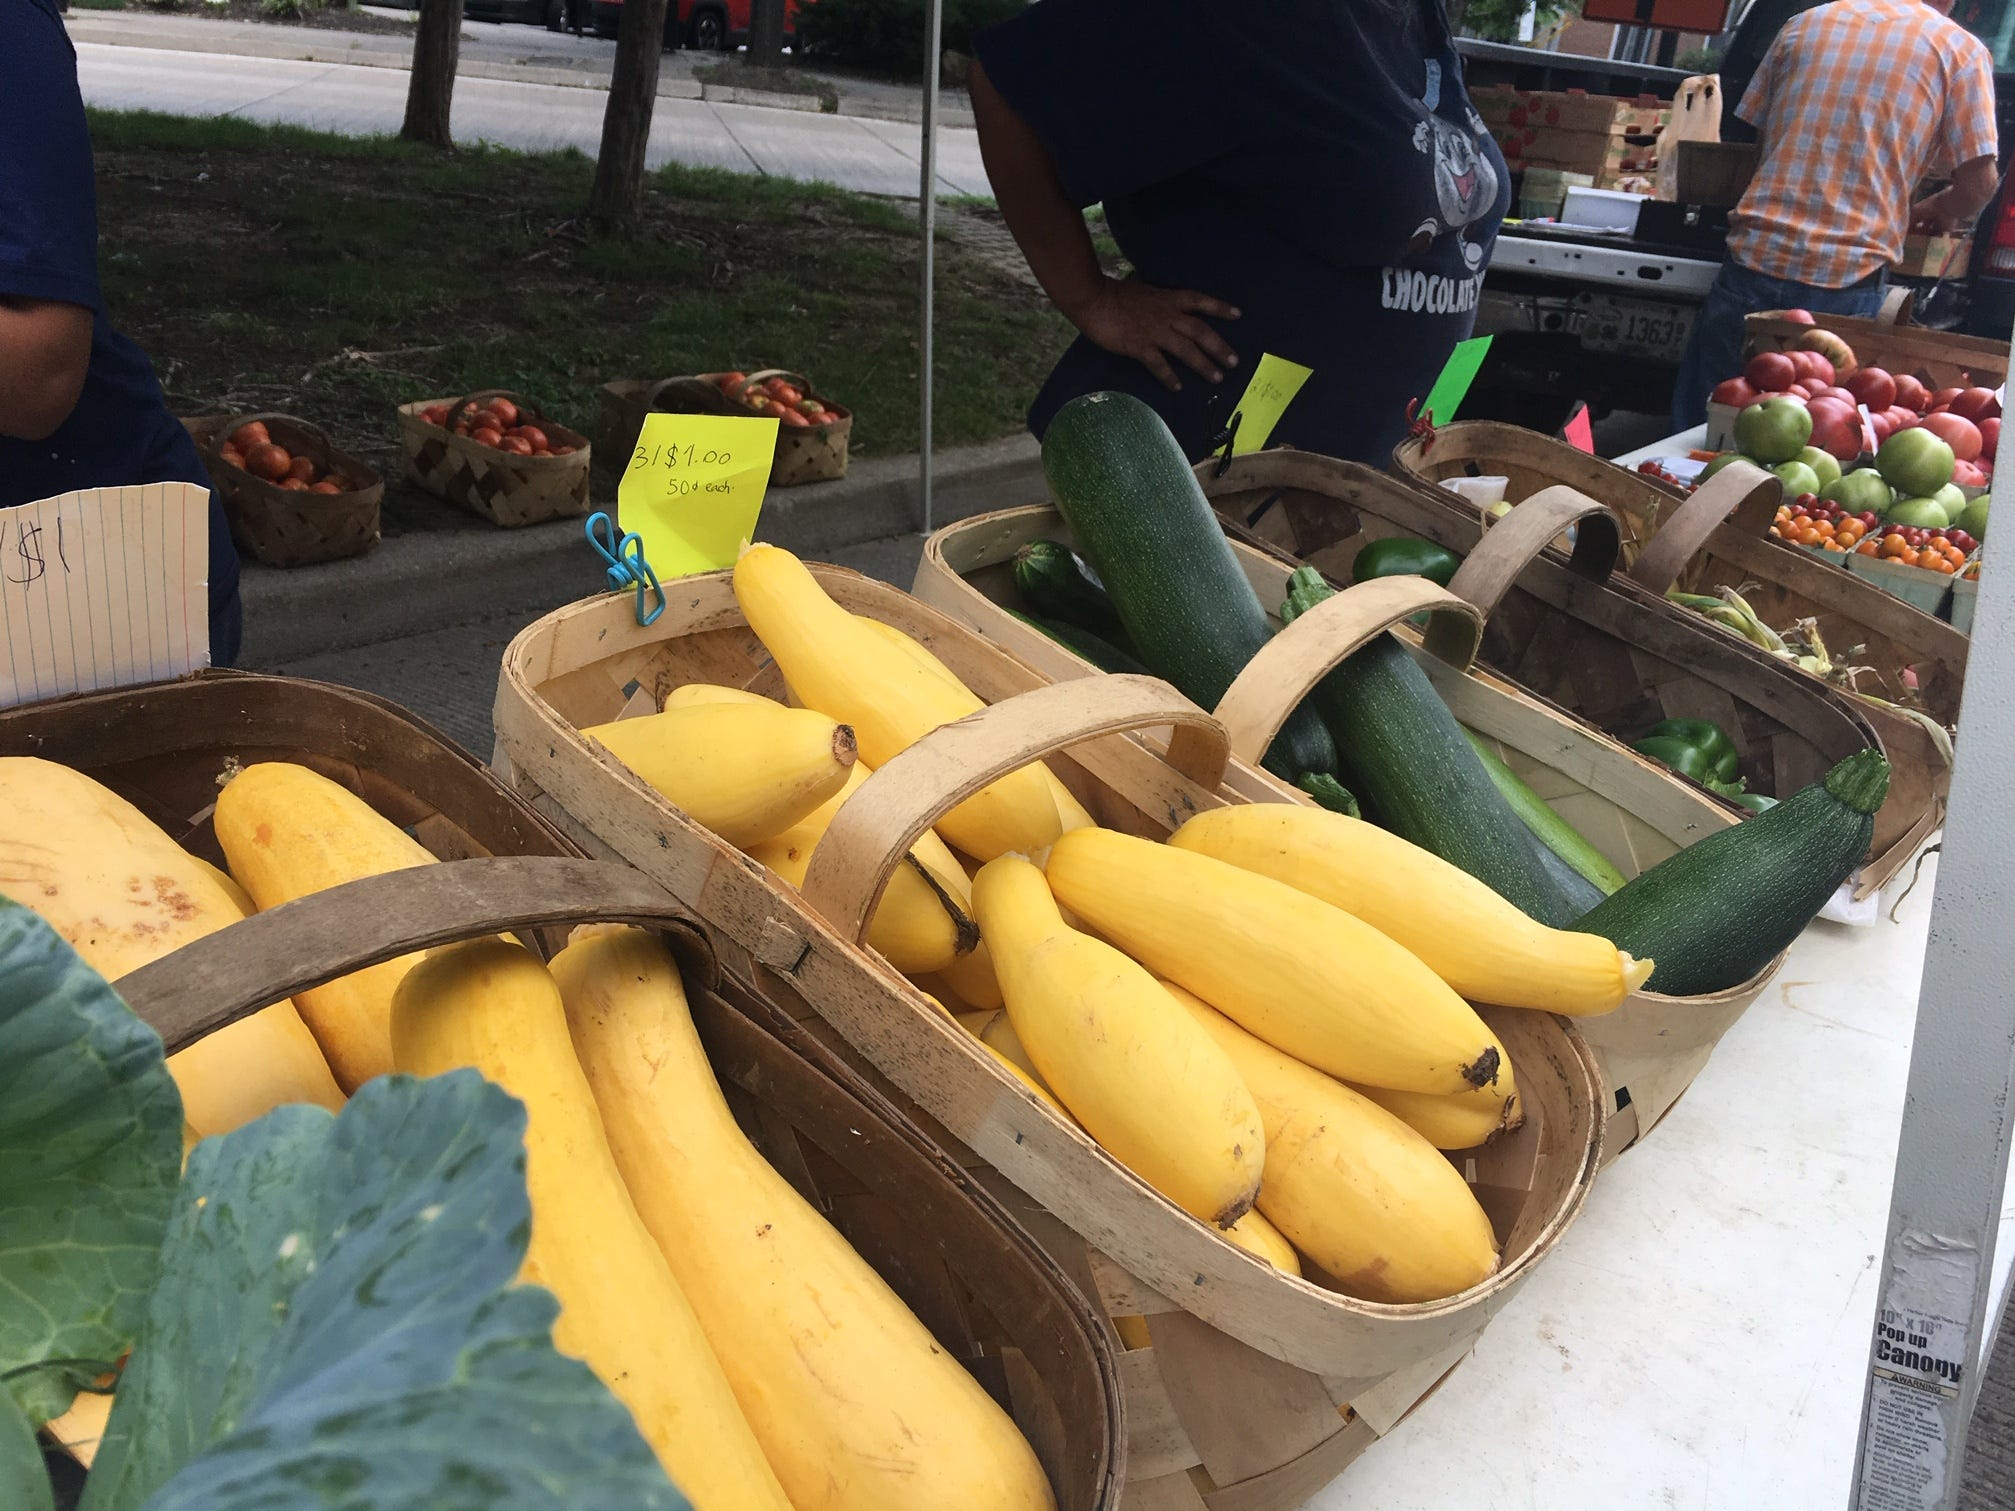 Starting Nov. 3, Covington Farmers Market moves indoors featuring  seasonal produce, meats, eggs, honey, baked goods, prepared foods, natural beauty products, dog treats and more.